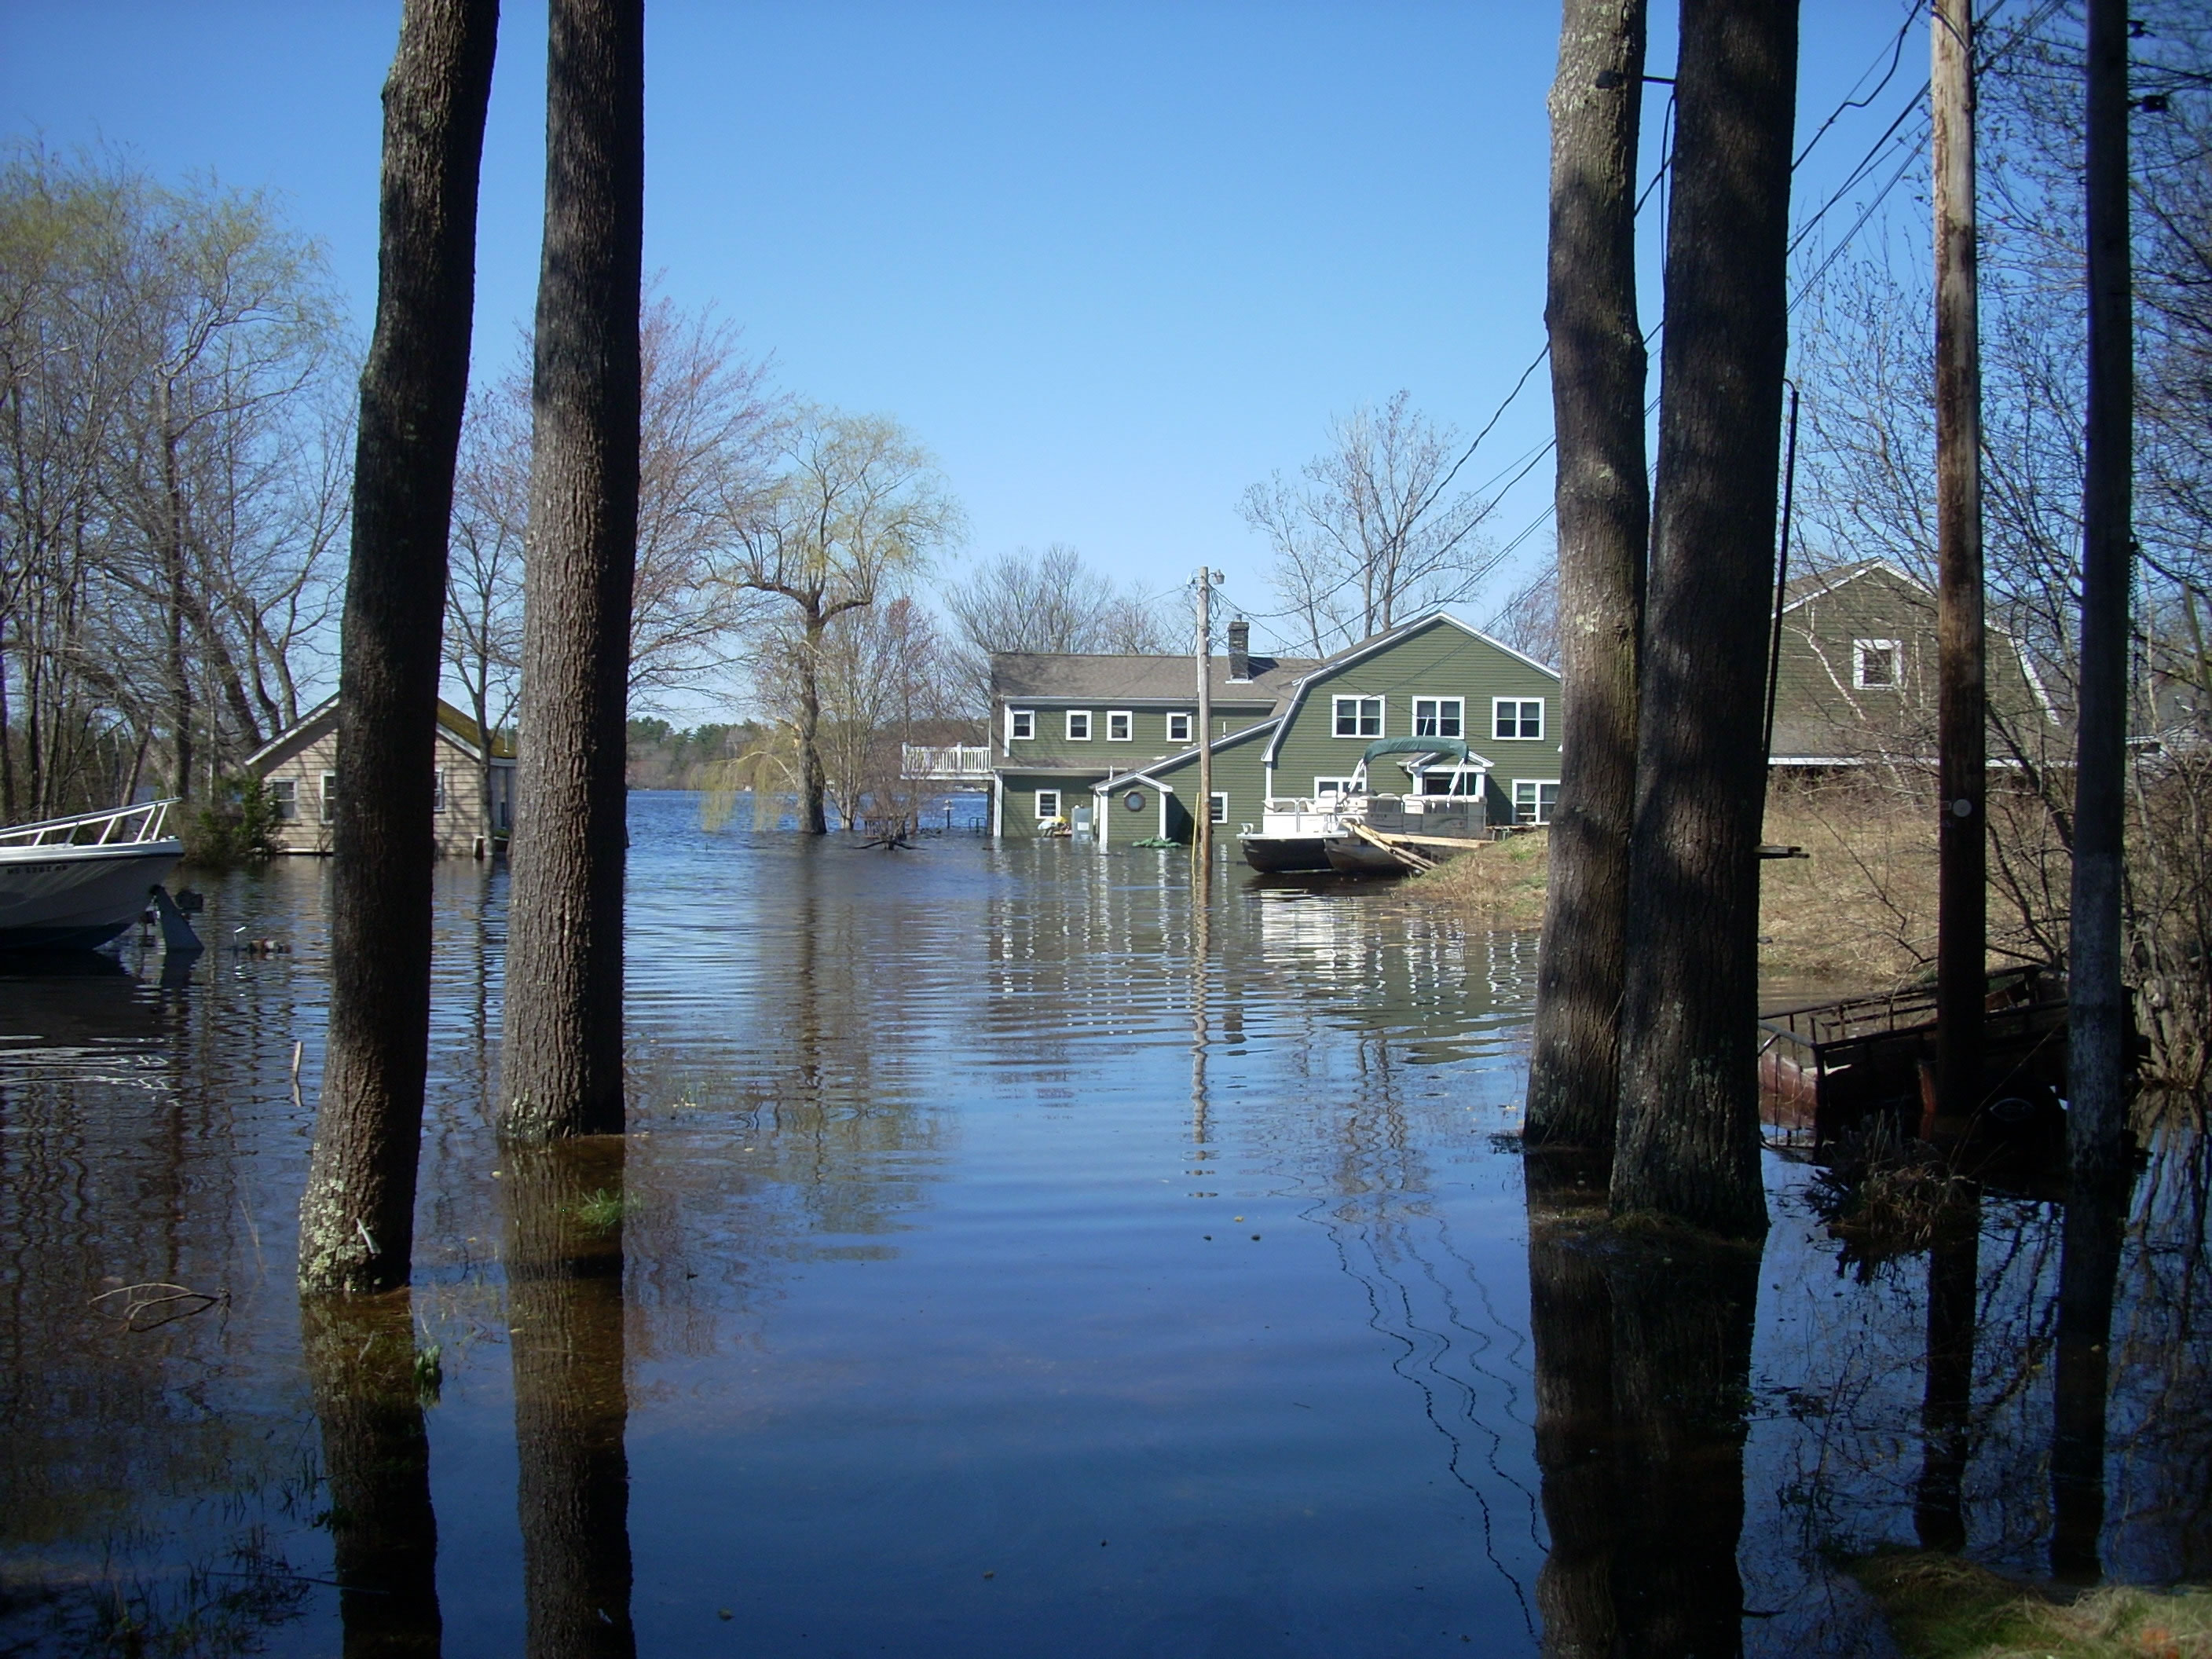 A photo of the Lakeville Flood near the Boatlanding